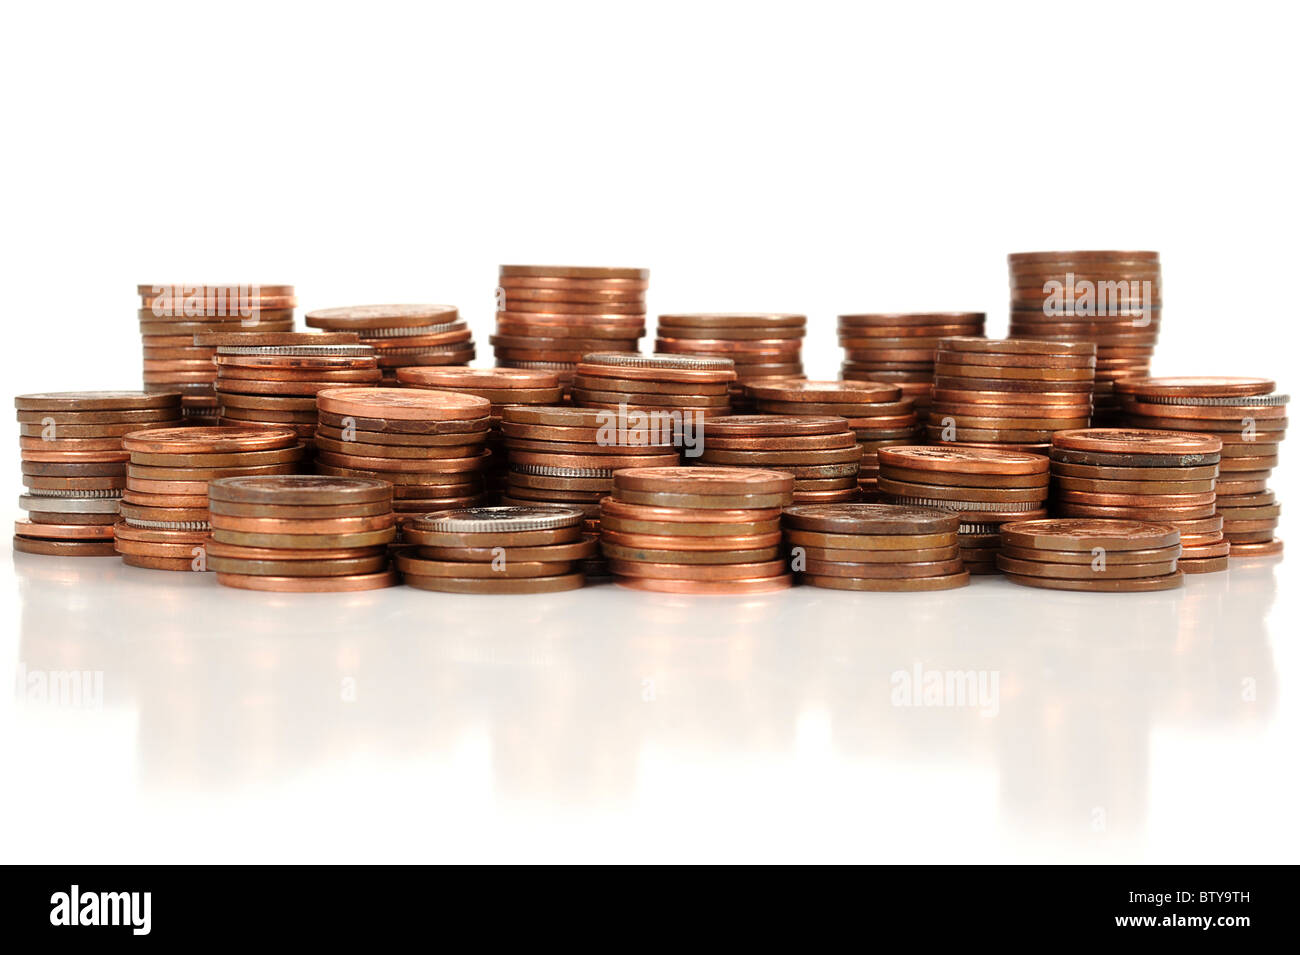 Pile of coins placed on white background - Stock Image